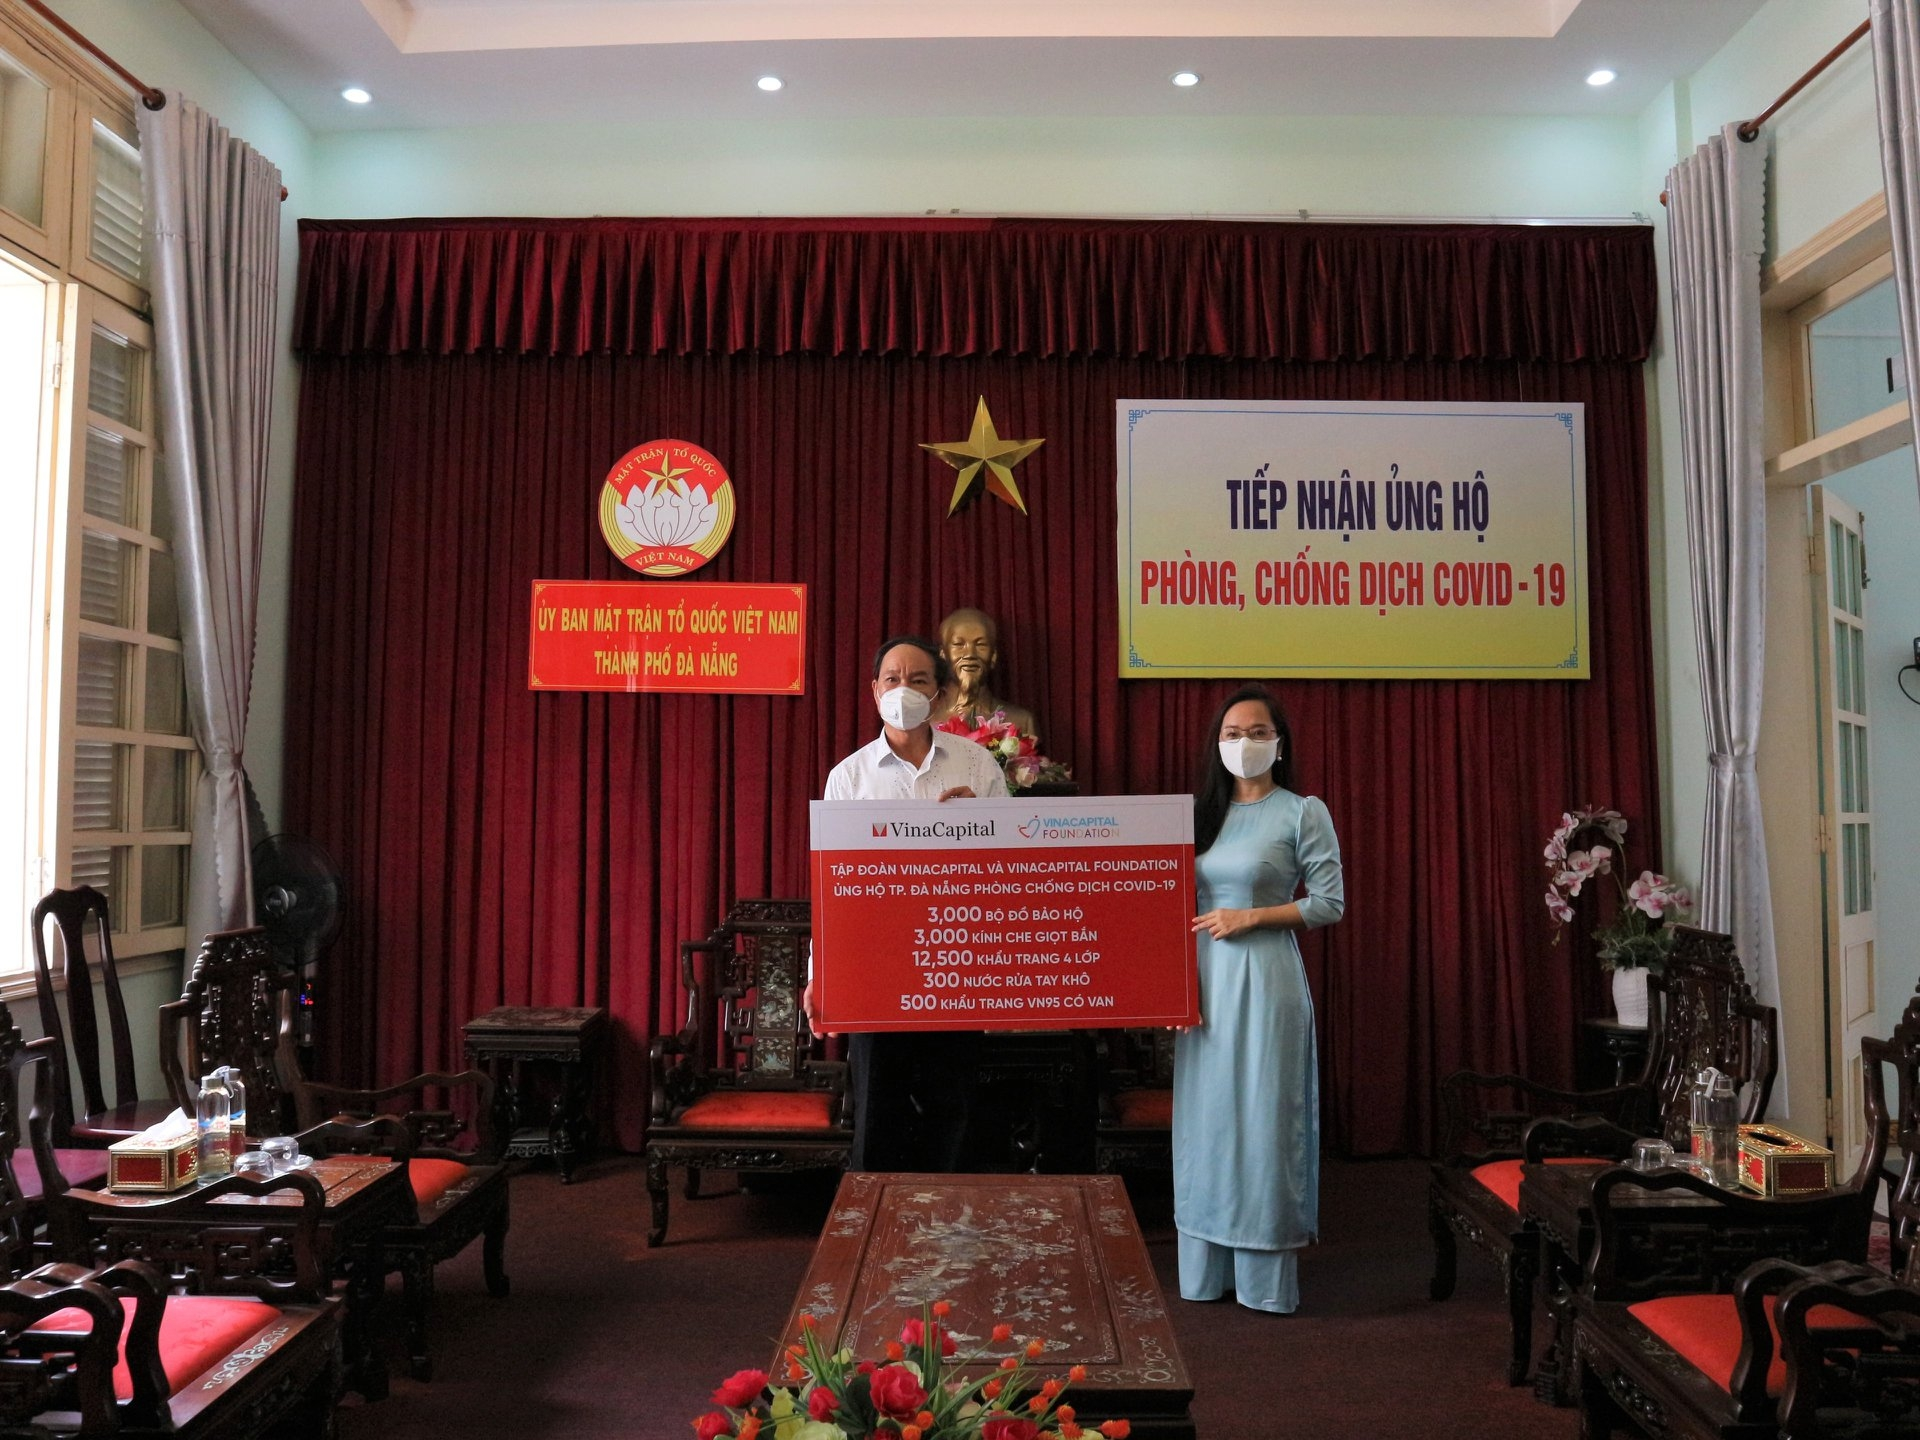 Da Nang received support to cope with COVID 19